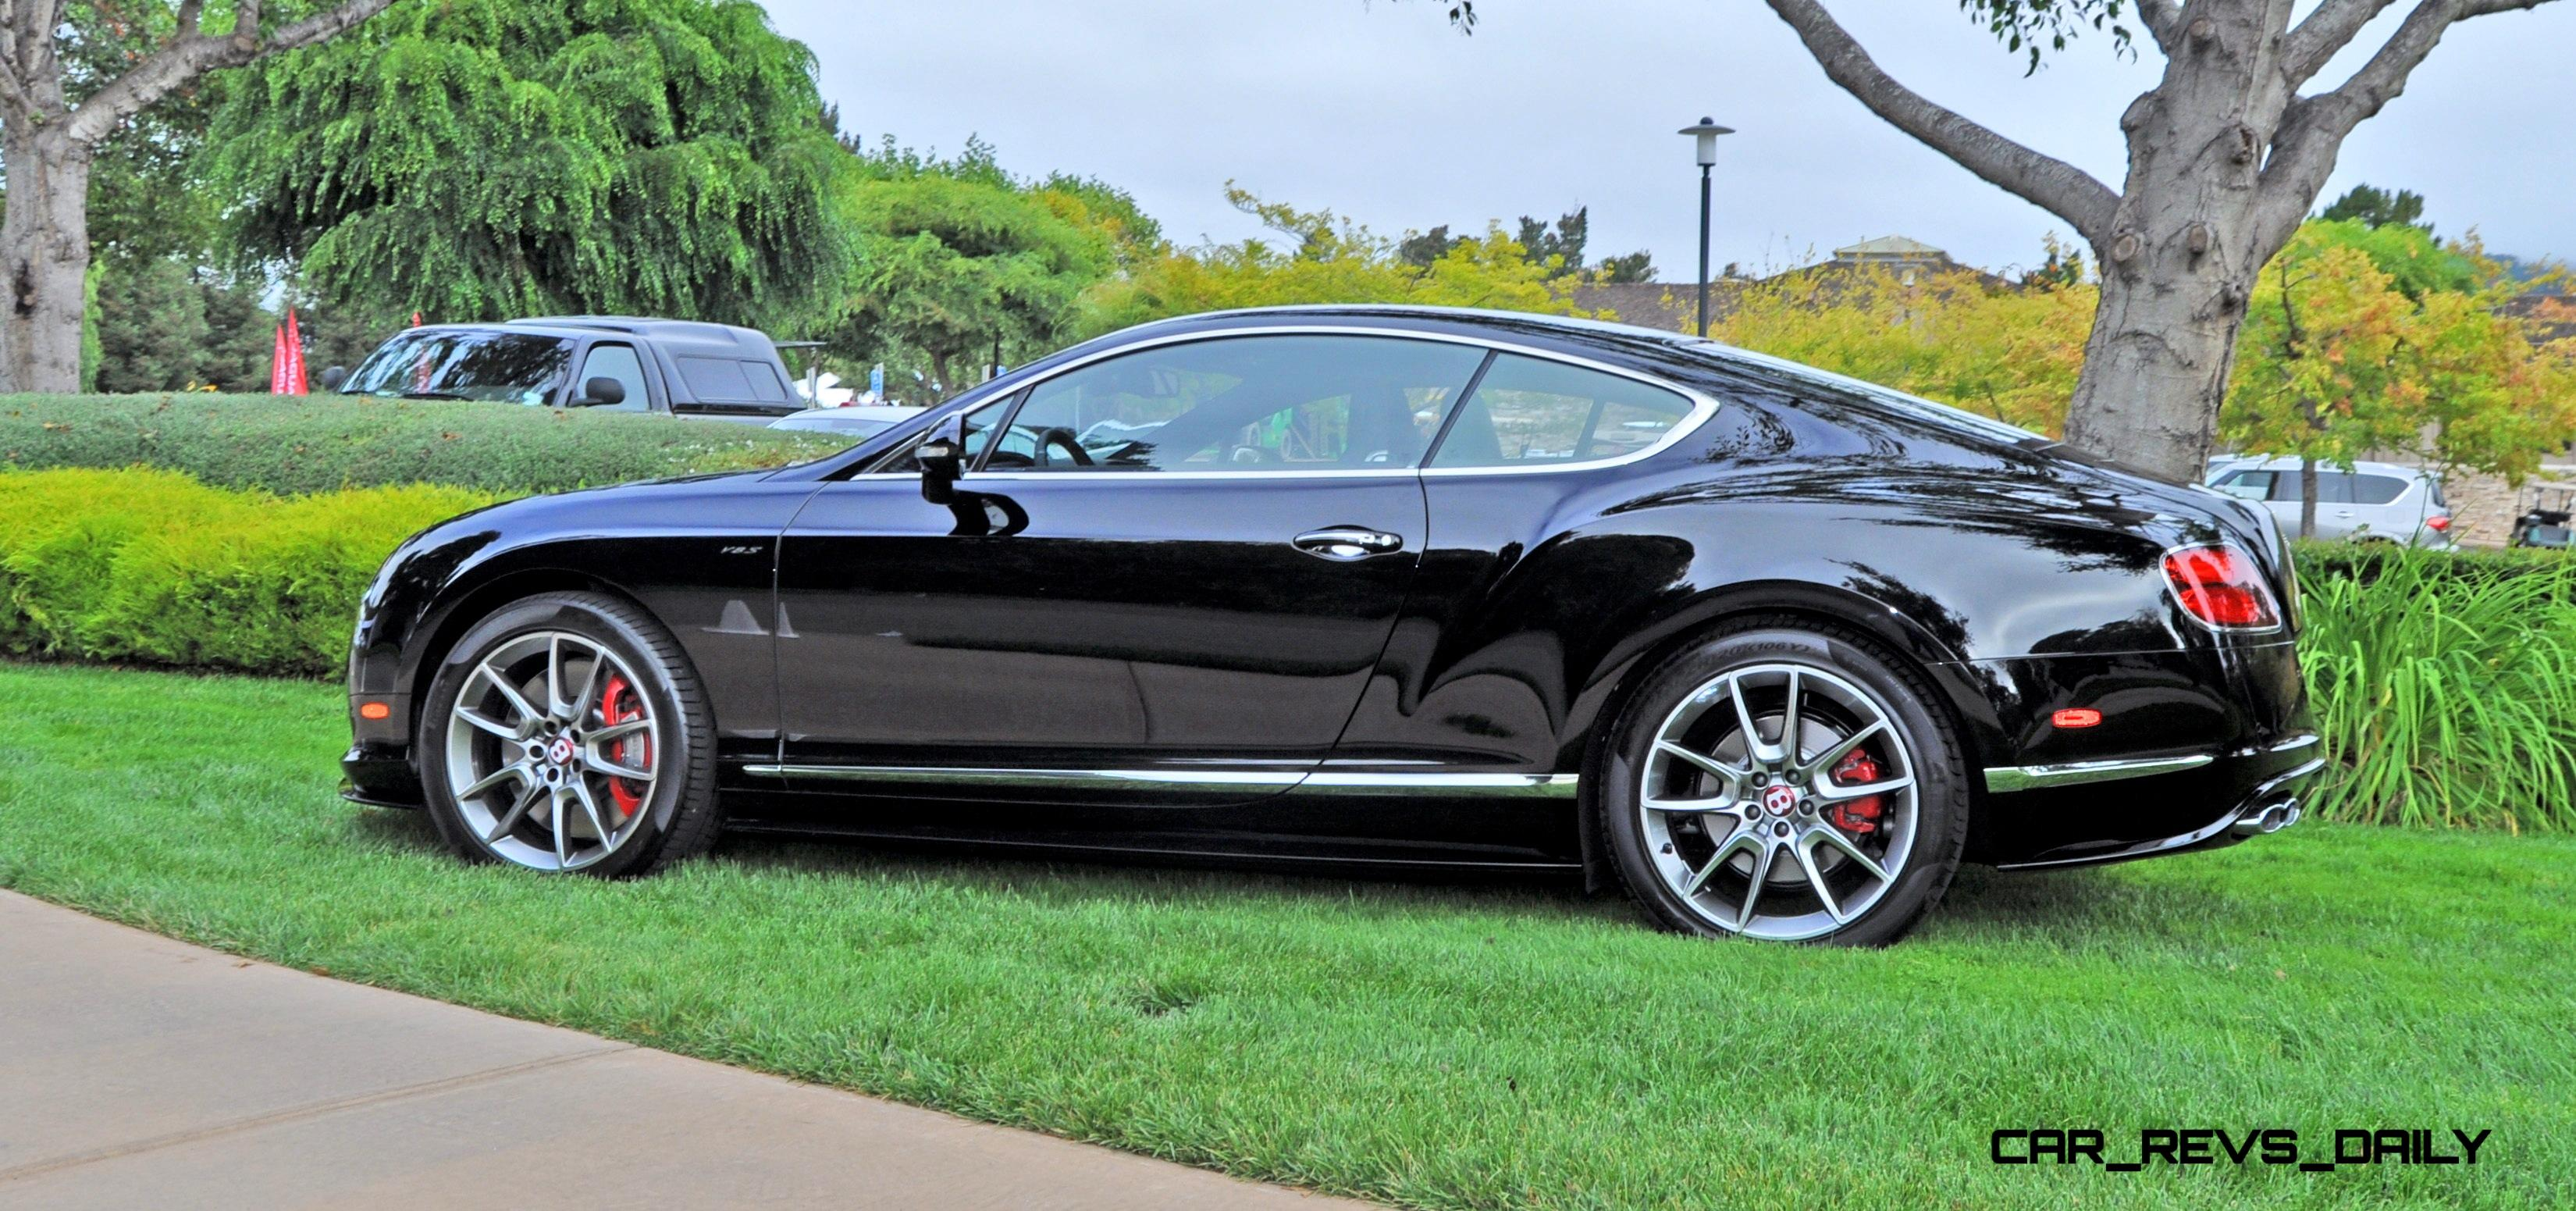 Car Revs Daily.com 2015 Bentley Continental GT V8S Is Stunning In Black  Crystal Paintwork 26